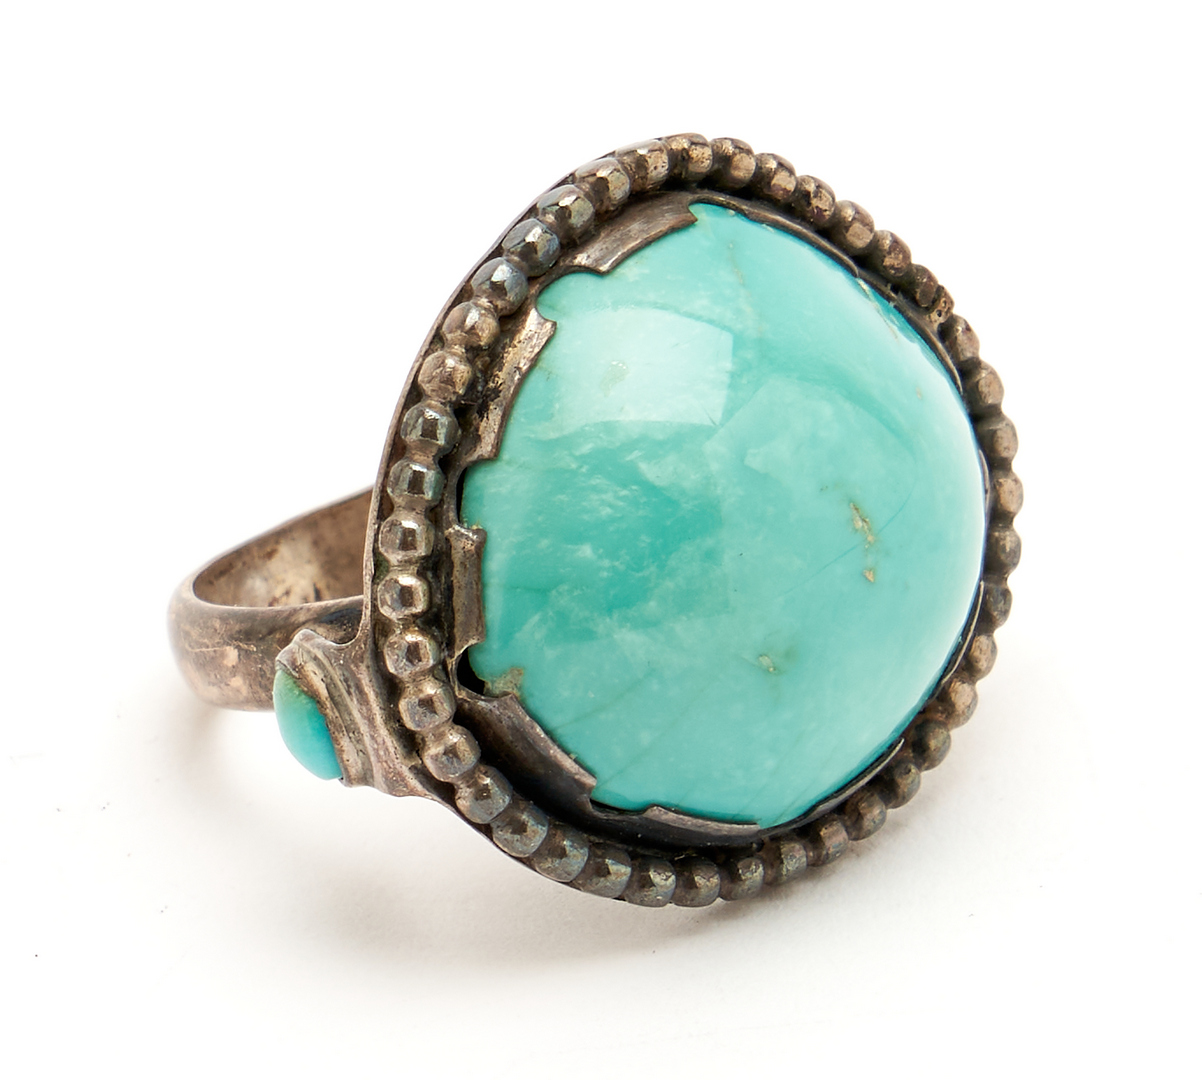 Lot 1098: 4 Native American Silver & Turquoise Jewelry Items